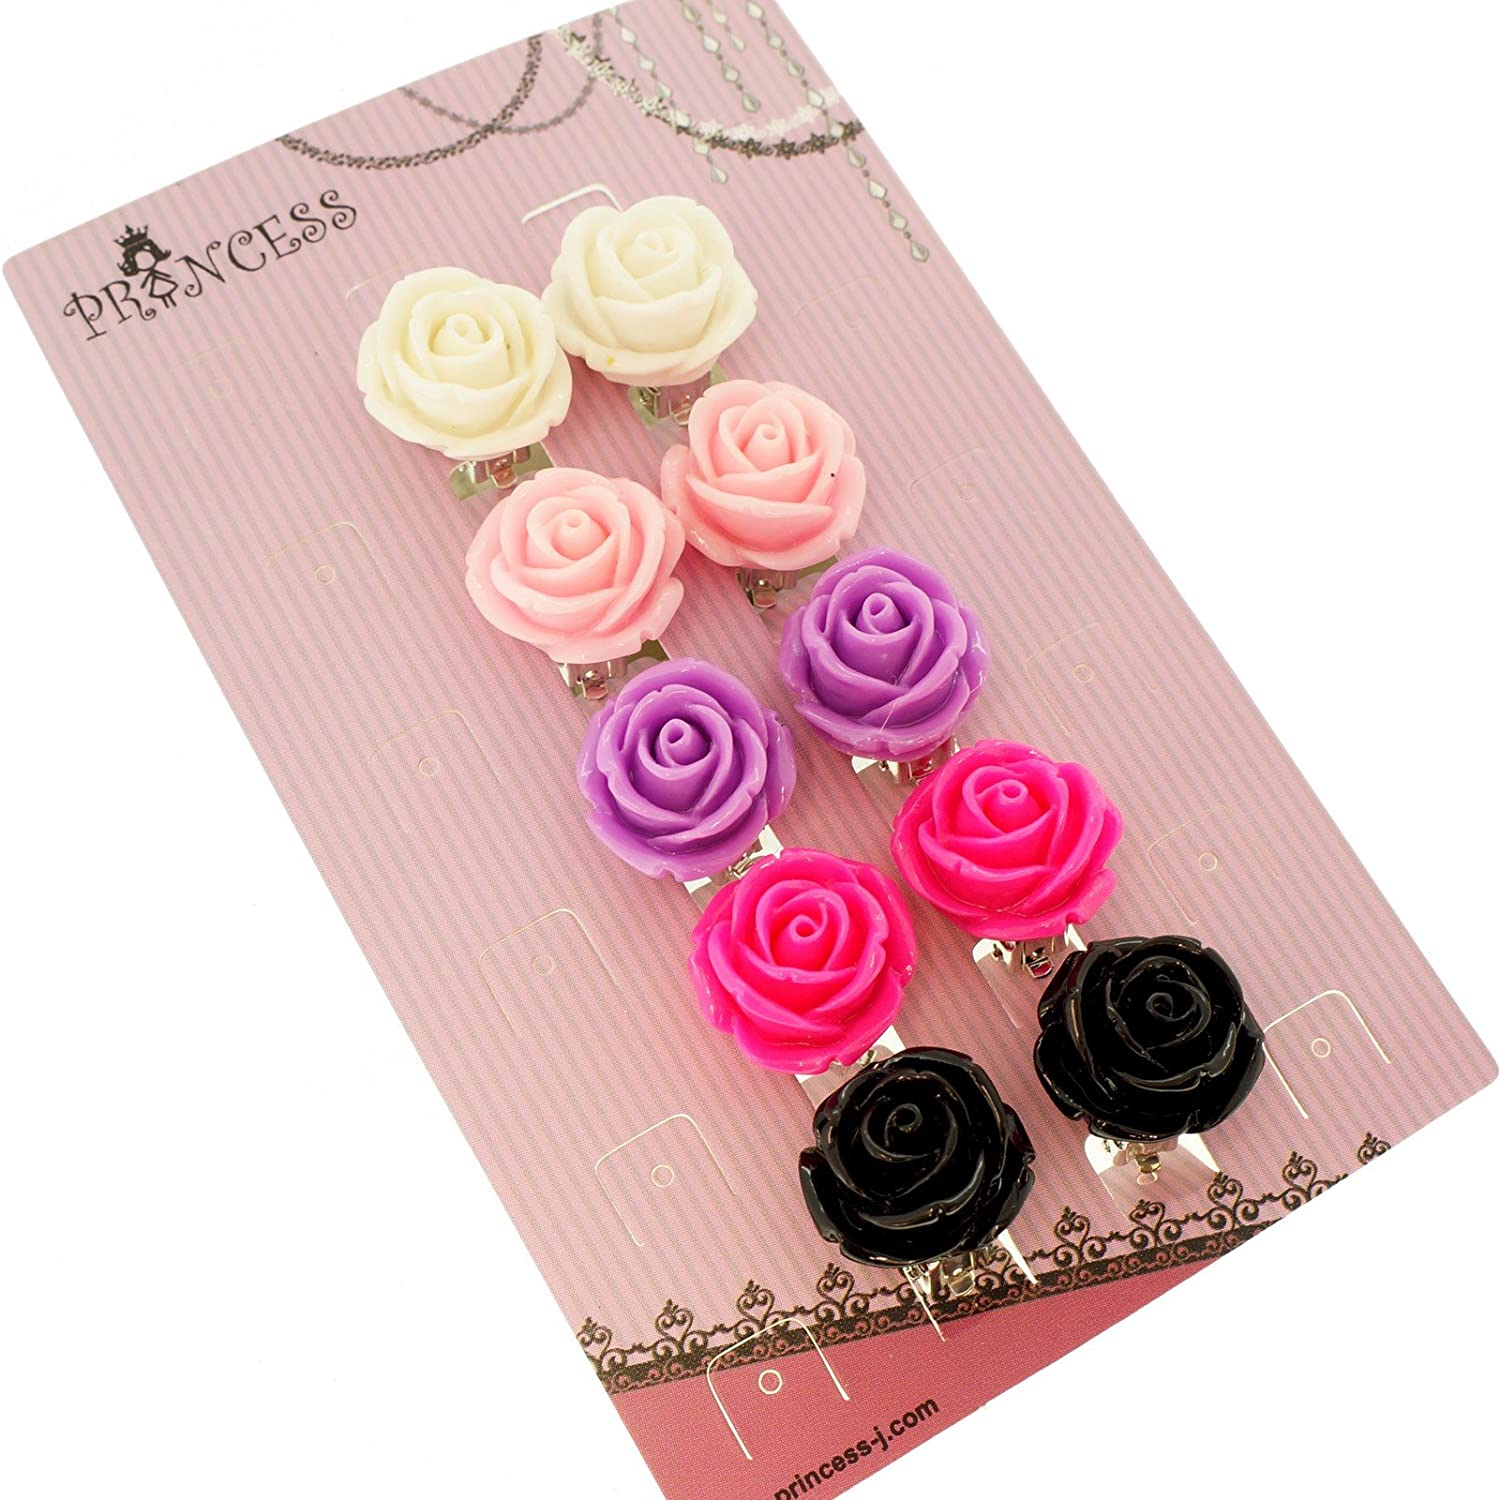 Big Size 19mm Color Rose Flower Design Fashion Clip-on Earrings, Pack of 5 Pairs PJ